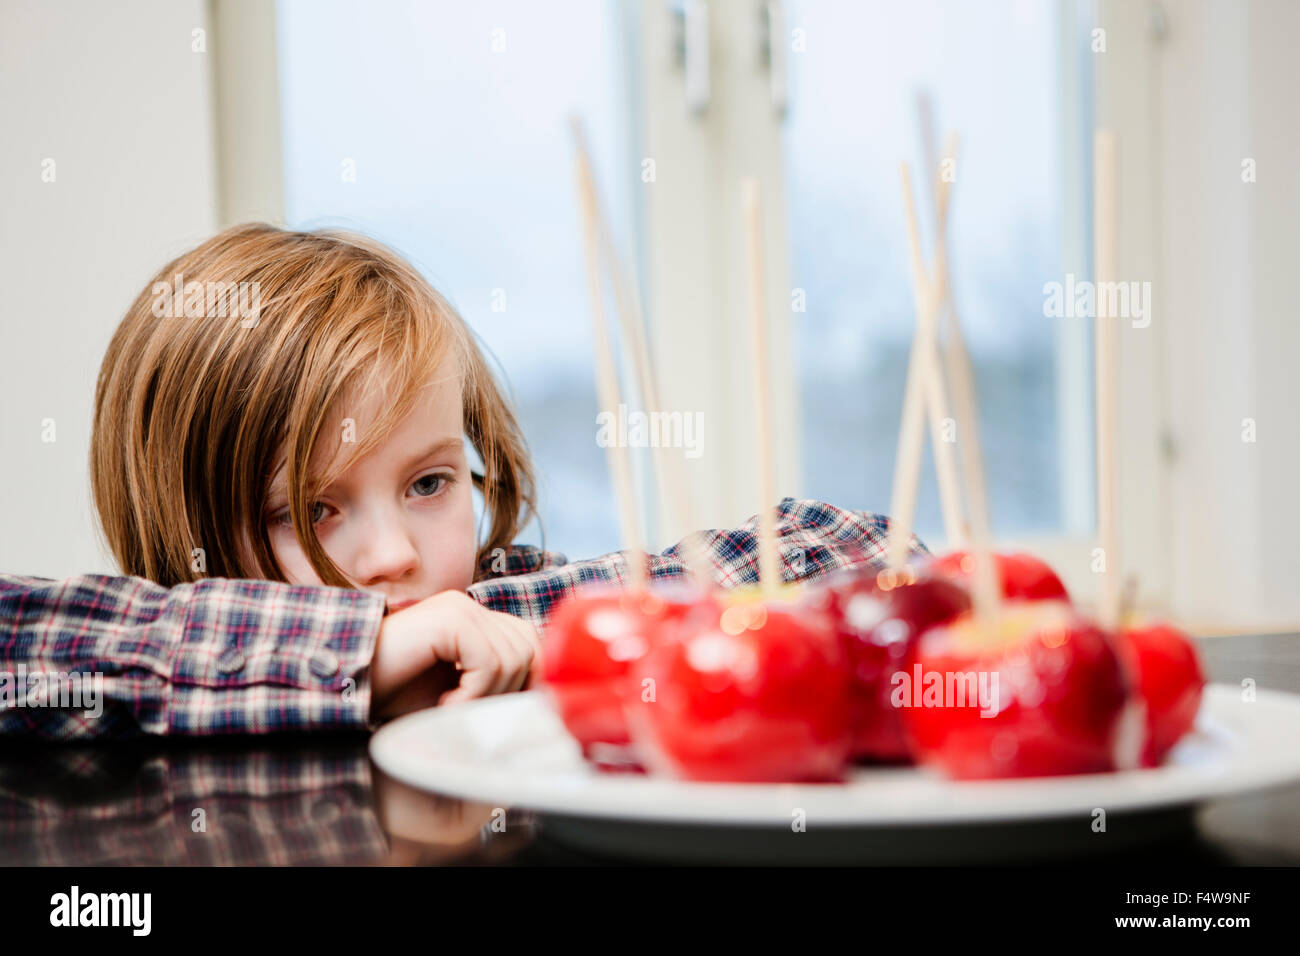 Girl (6-7) looking at taffy apples - Stock Image